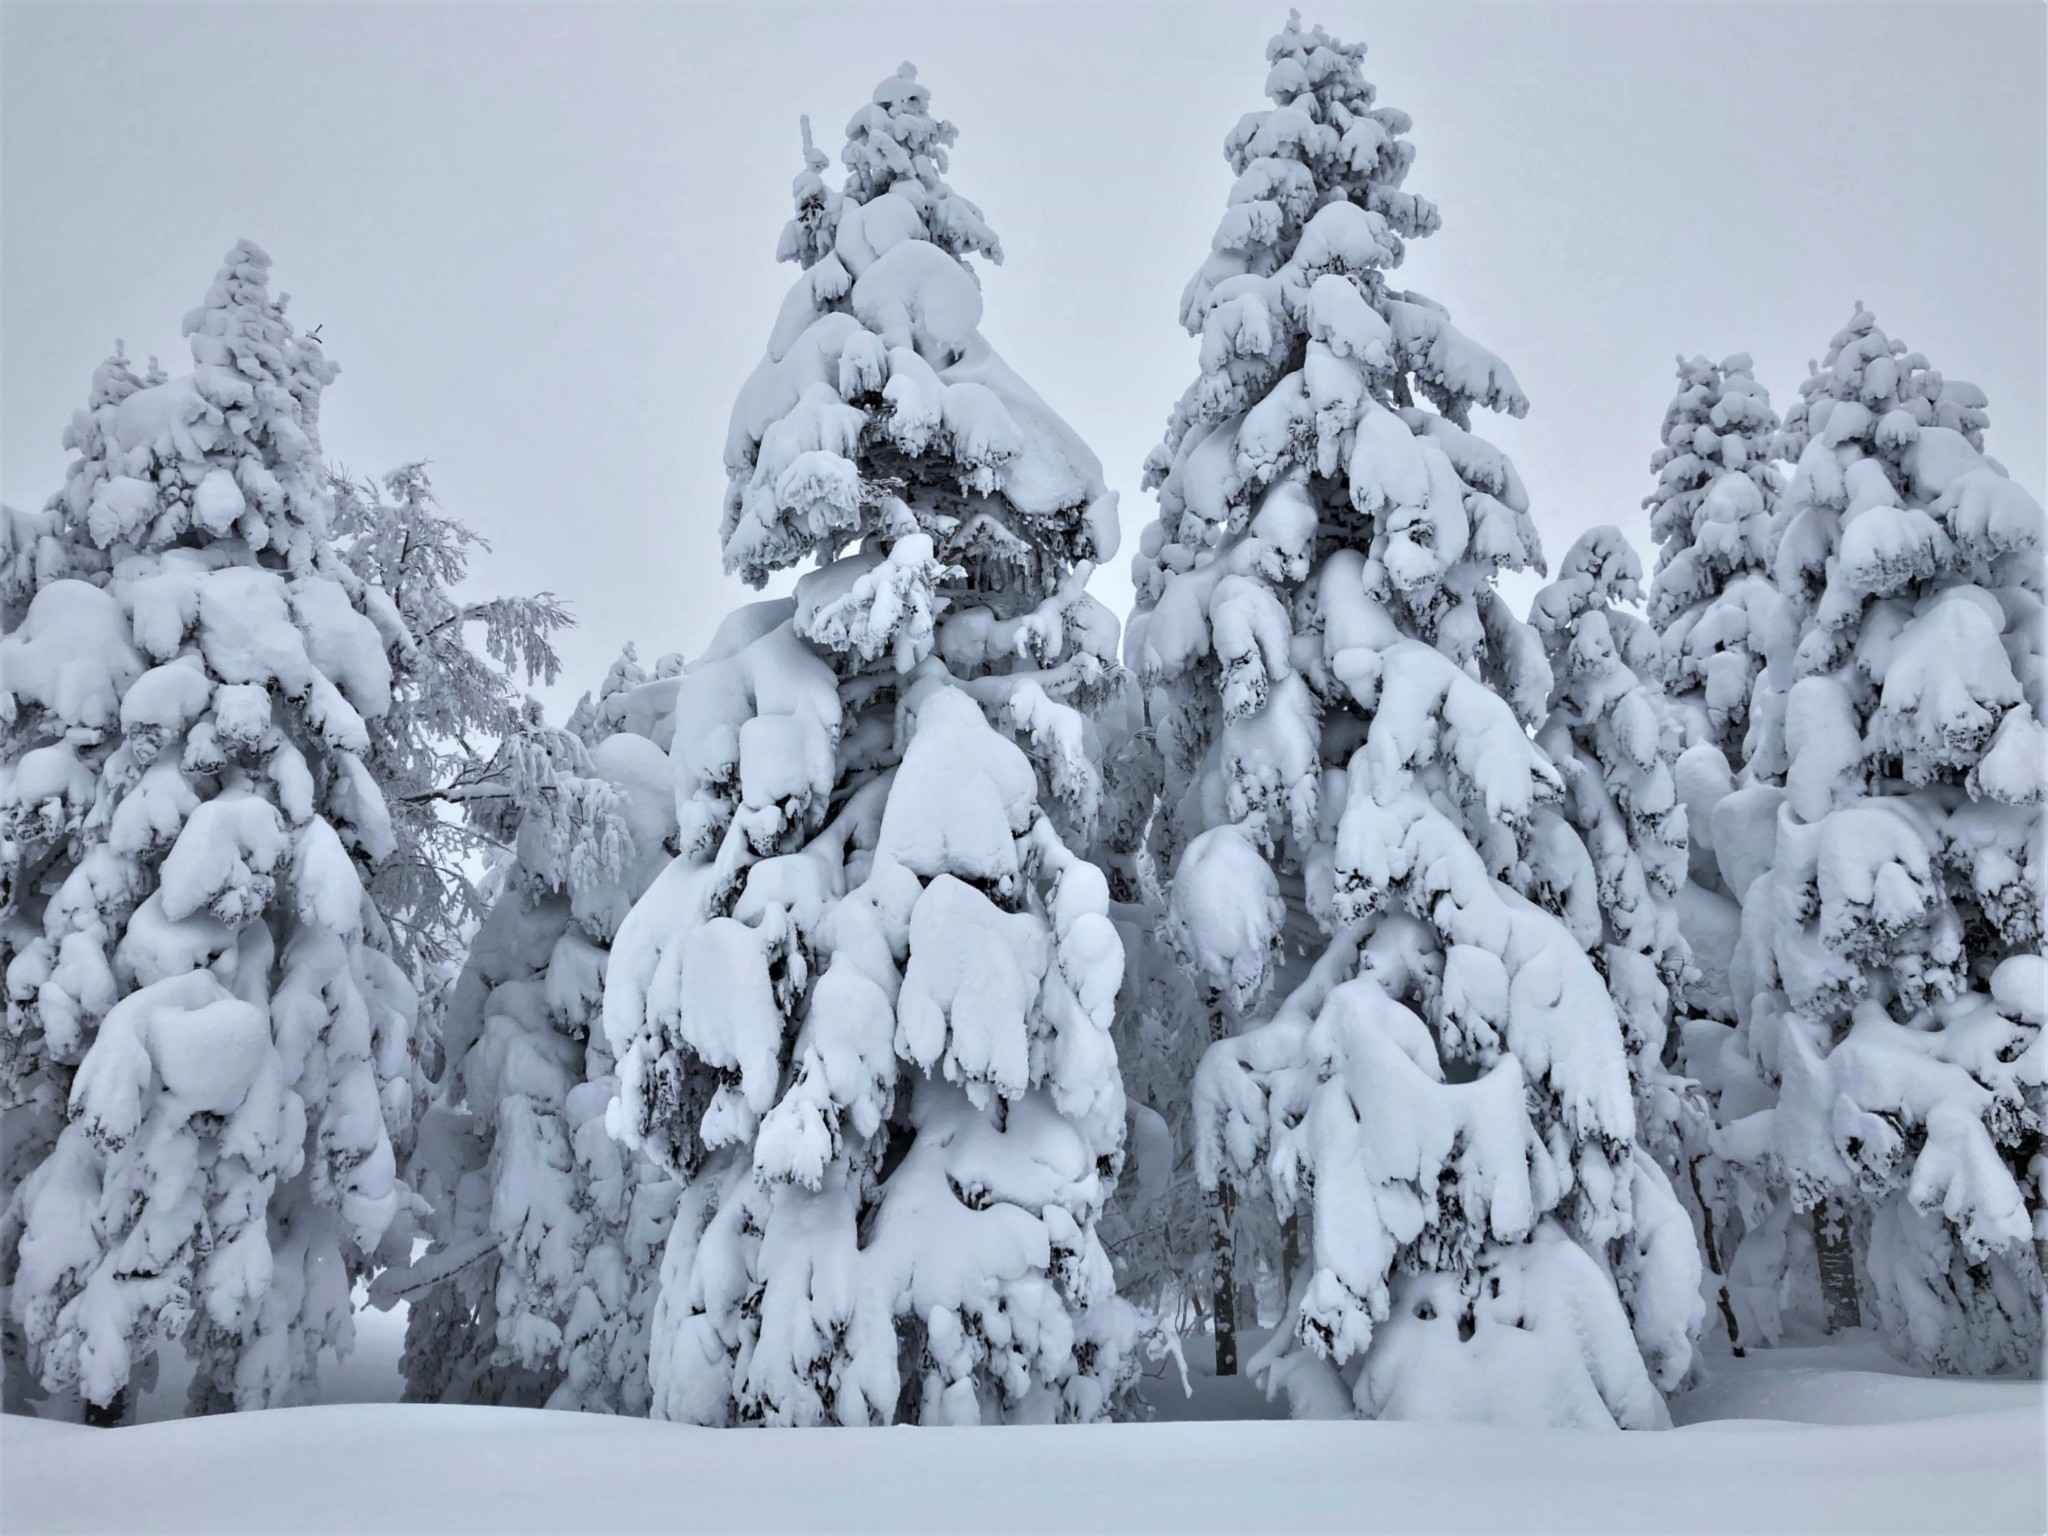 Large snow-covered trees at the edge of a winter forest on Mount Zao in Yamagata, Japan.